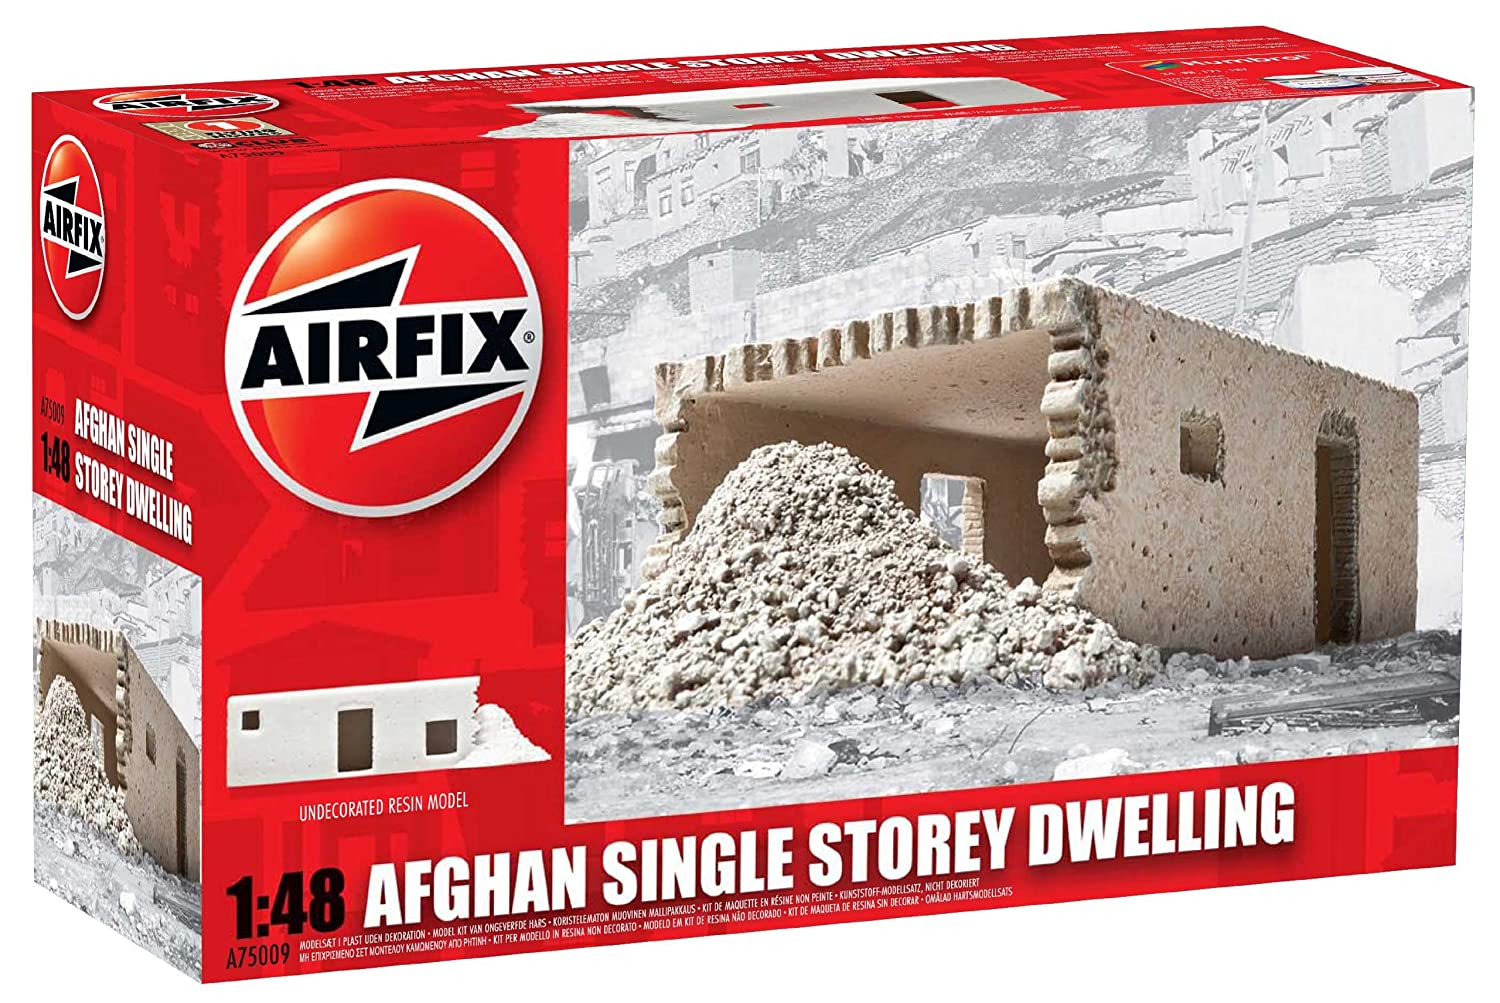 Airfix A75009 Afghan Single Storey Dwelling 1:48 Scale Unpainted Resin  Building